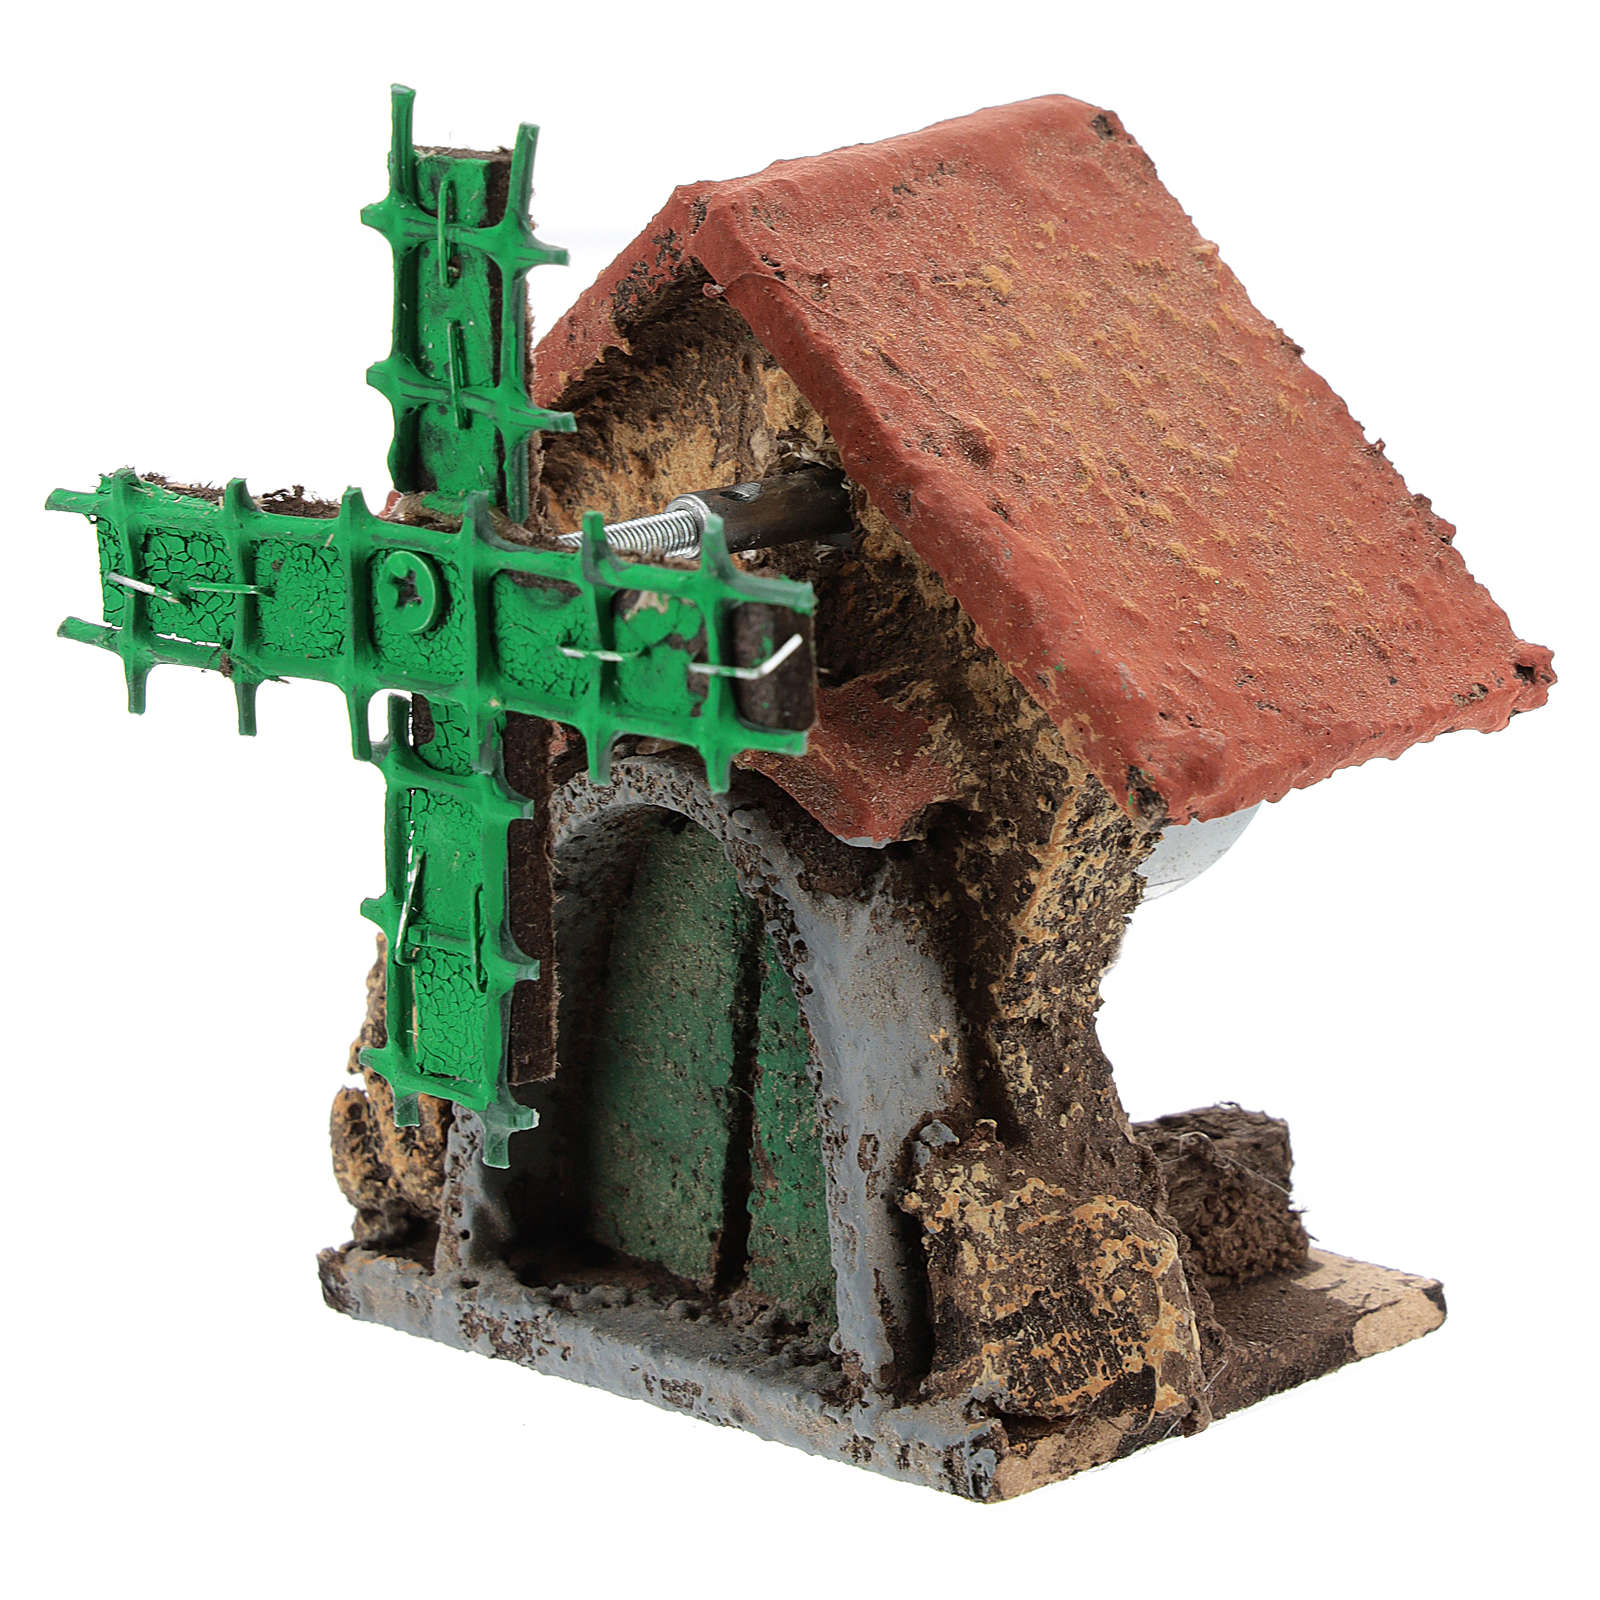 House with moving windmill 10x5x5 cm for Neapolitan Nativity scene of 4-6 cm 4